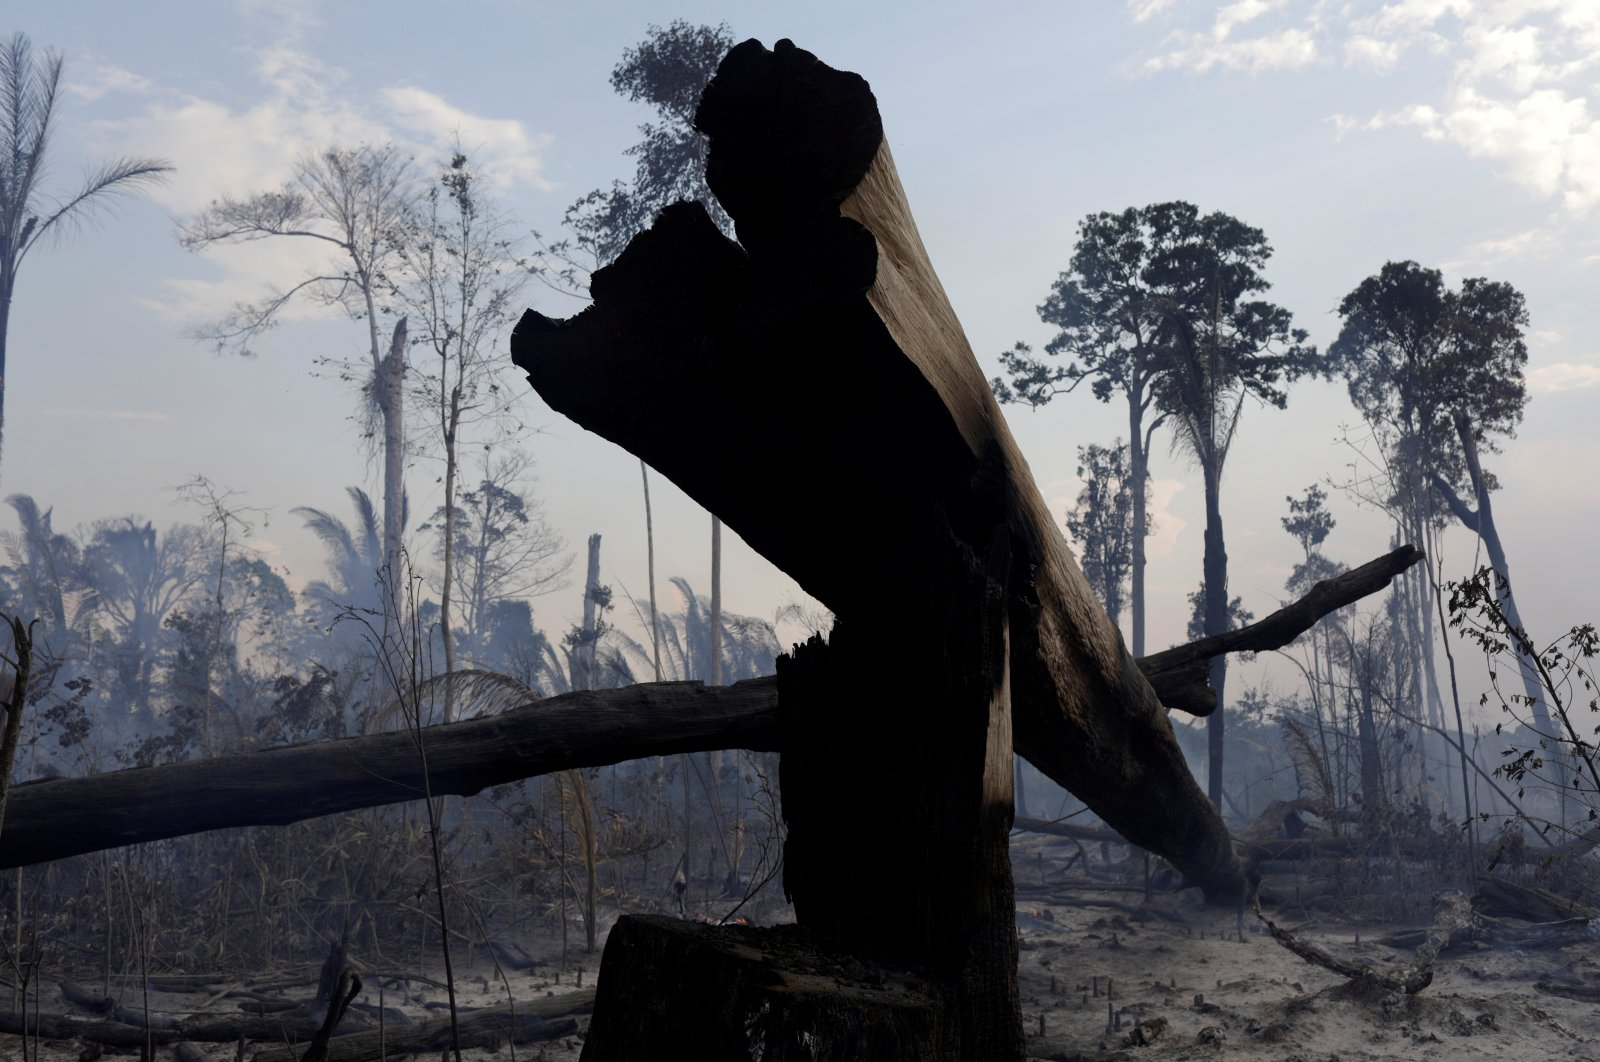 A burning tract of the Amazon forest as it is cleared by farmers, in Rio Pardo, Rondonia, Brazil, Sept. 16, 2019. (Reuters Photo)